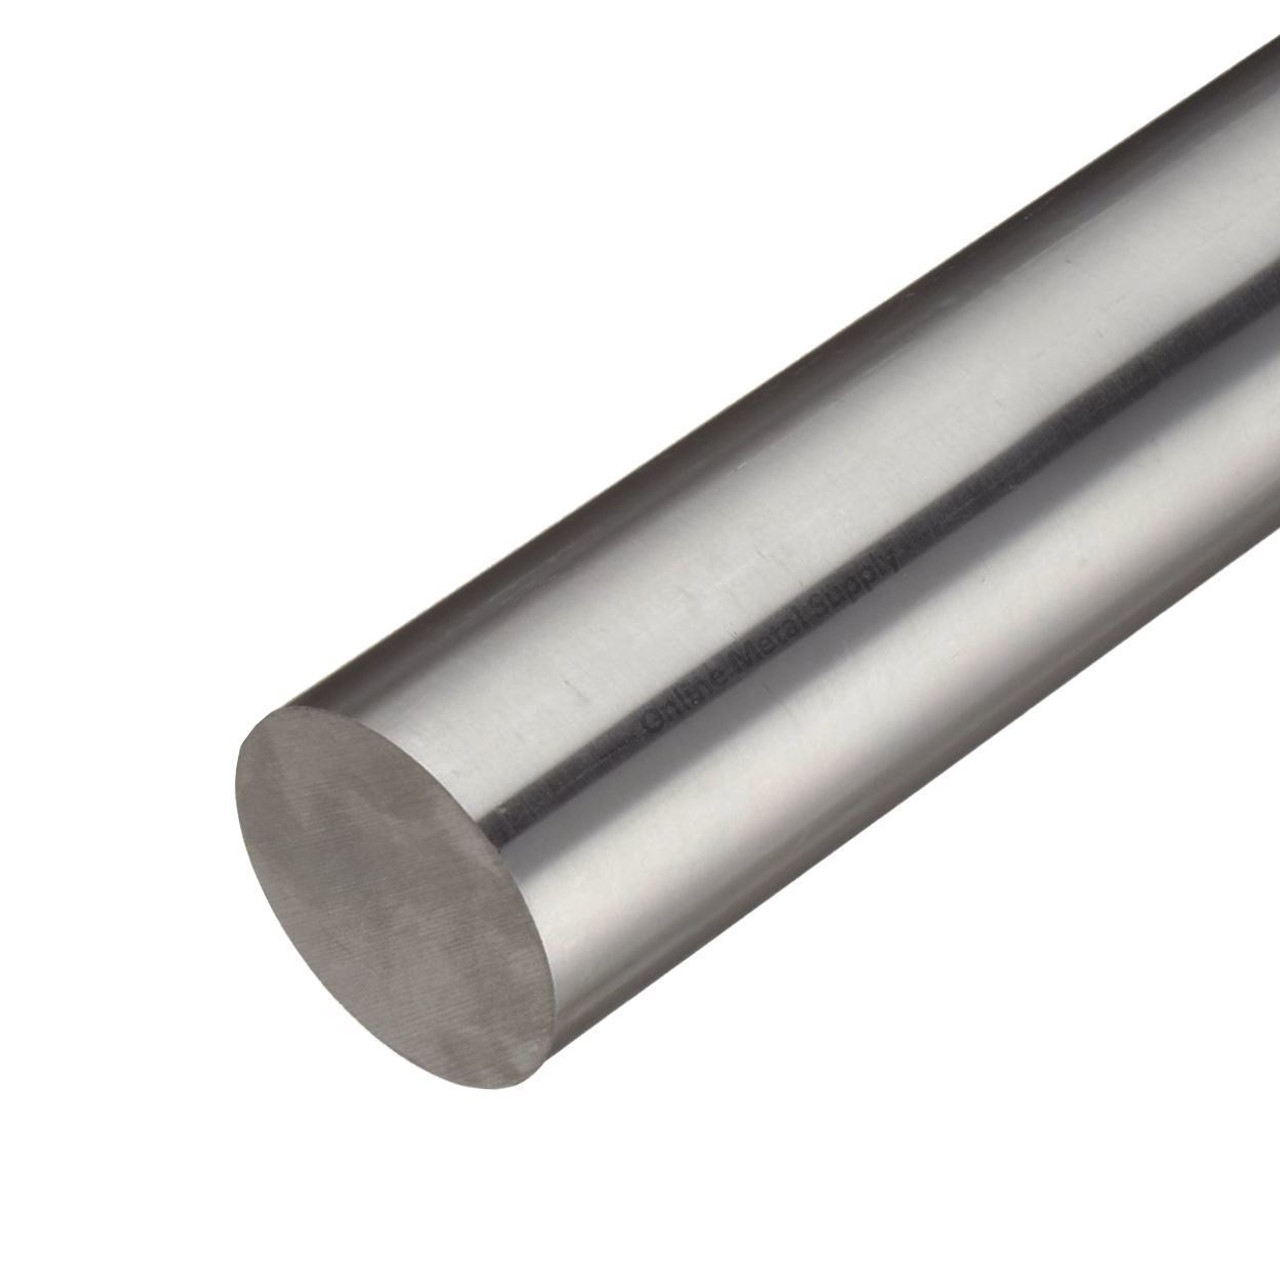 0.687 (11/16 inch) x 72 inches, 15-5 Cond A CF Stainless Steel Round Rod